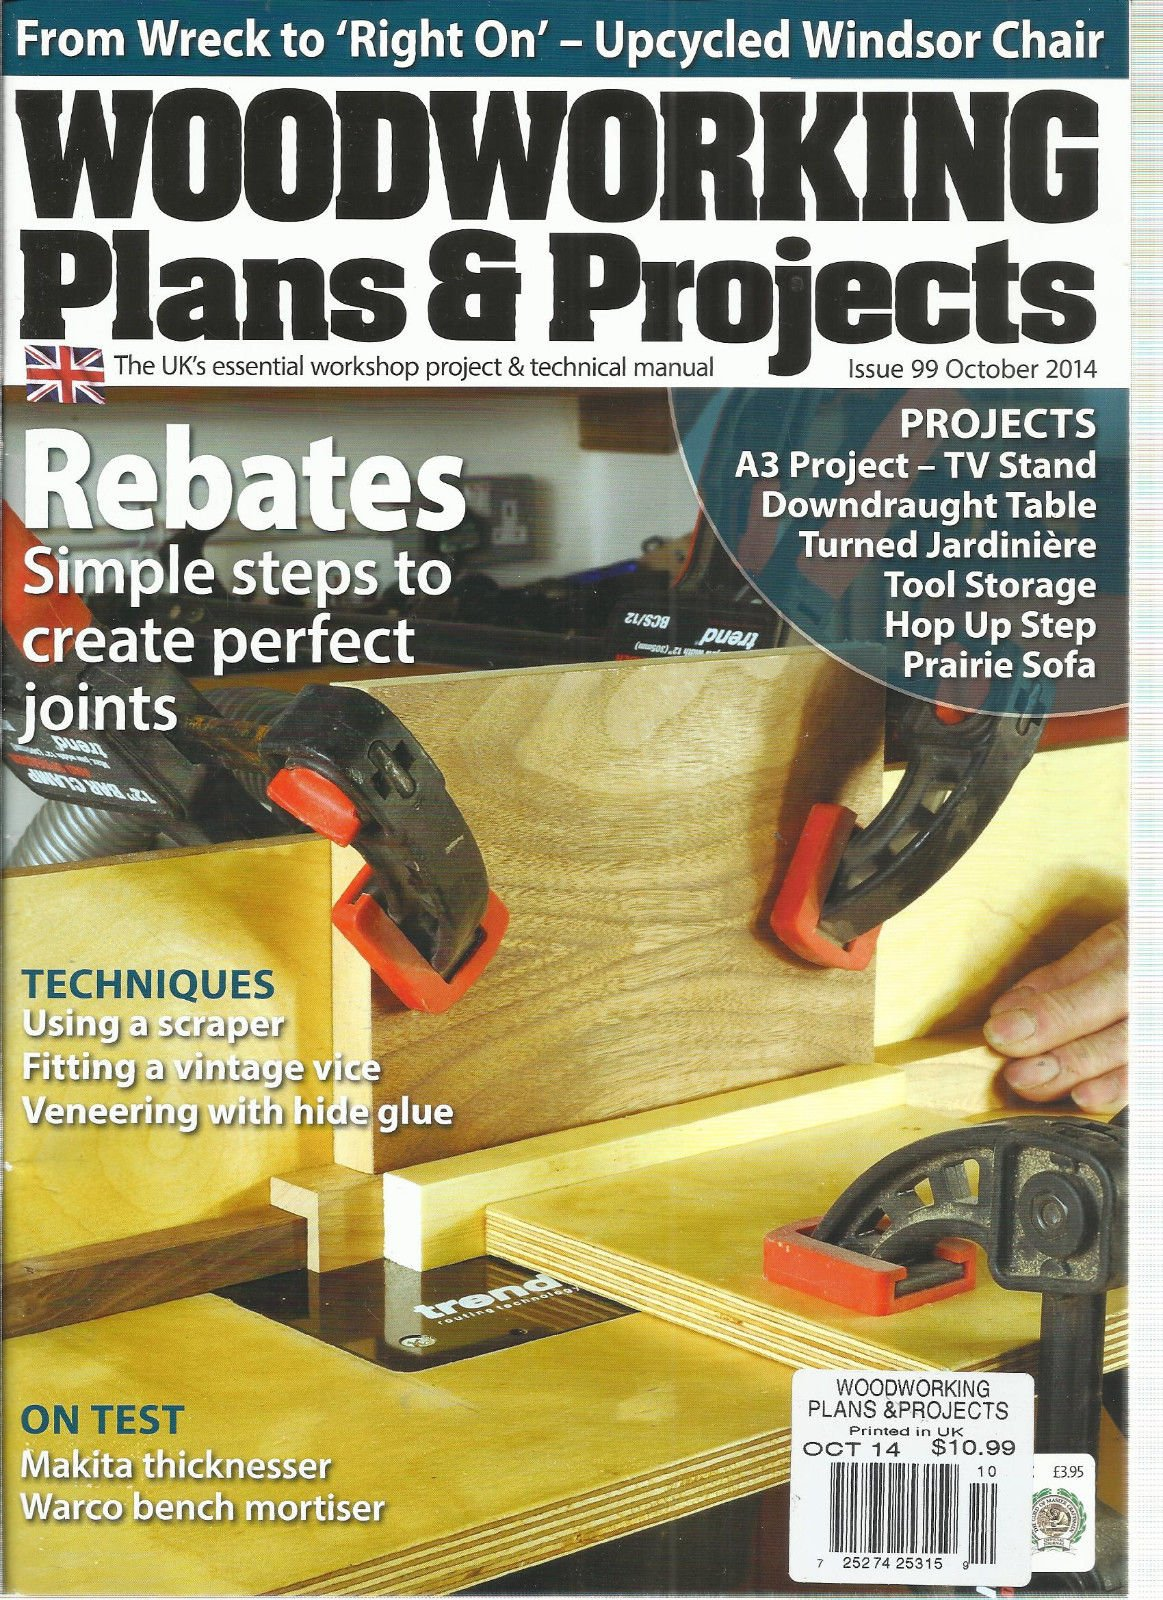 WOODWORKING PLANS & PROJECTS, OCTOBER 2014, ISSUE 99 by Generic (Image #1)